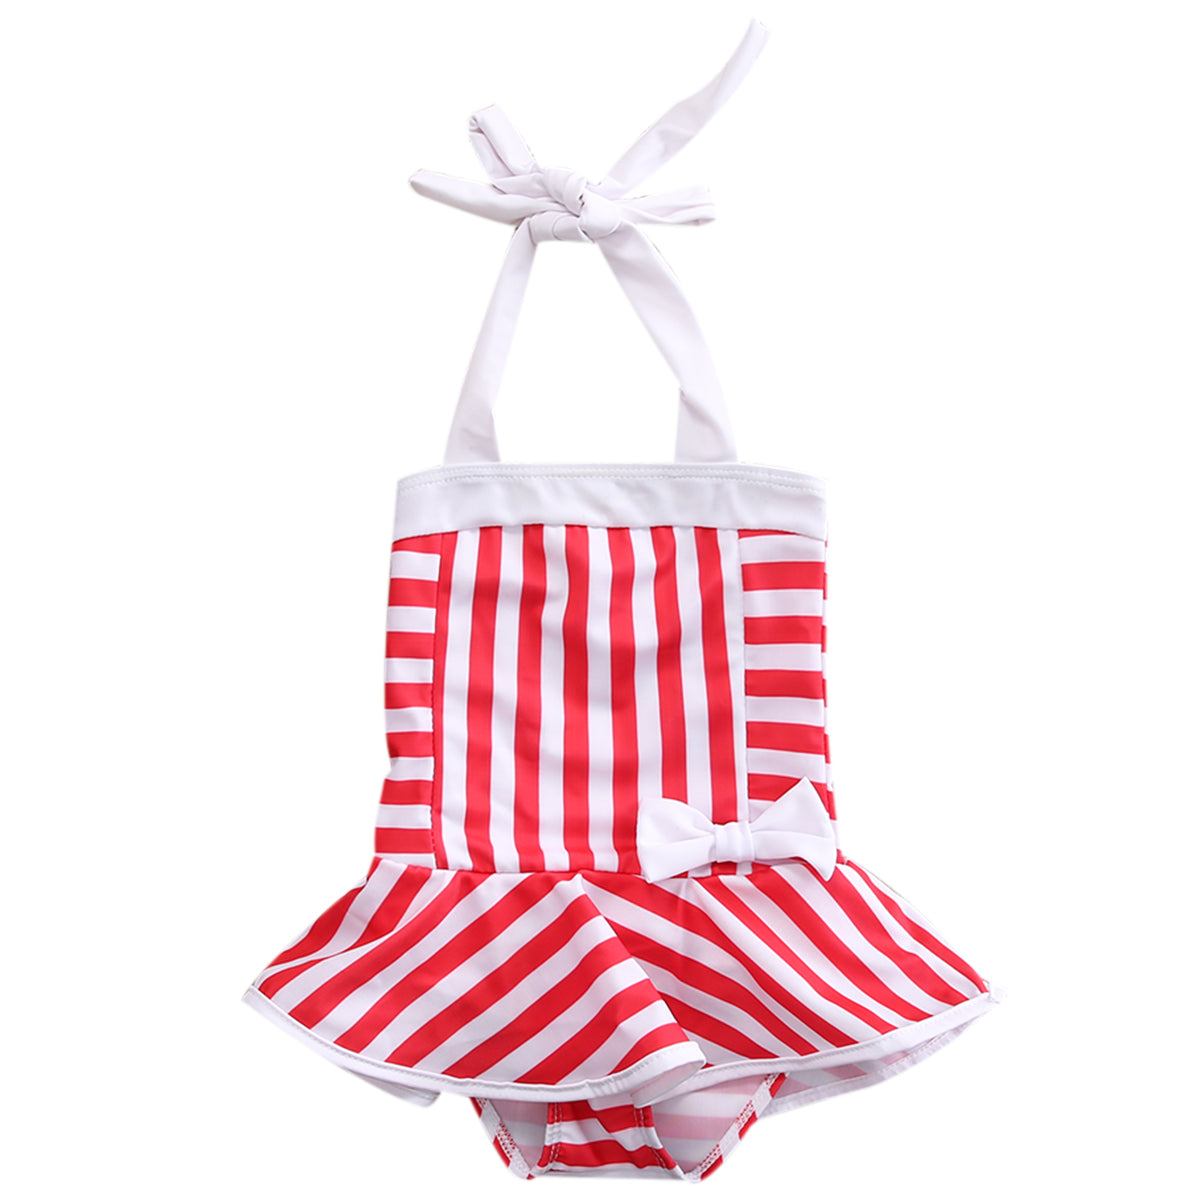 c59f9fa0c80ac Red & White Striped Swimsuit – Bargain Camper